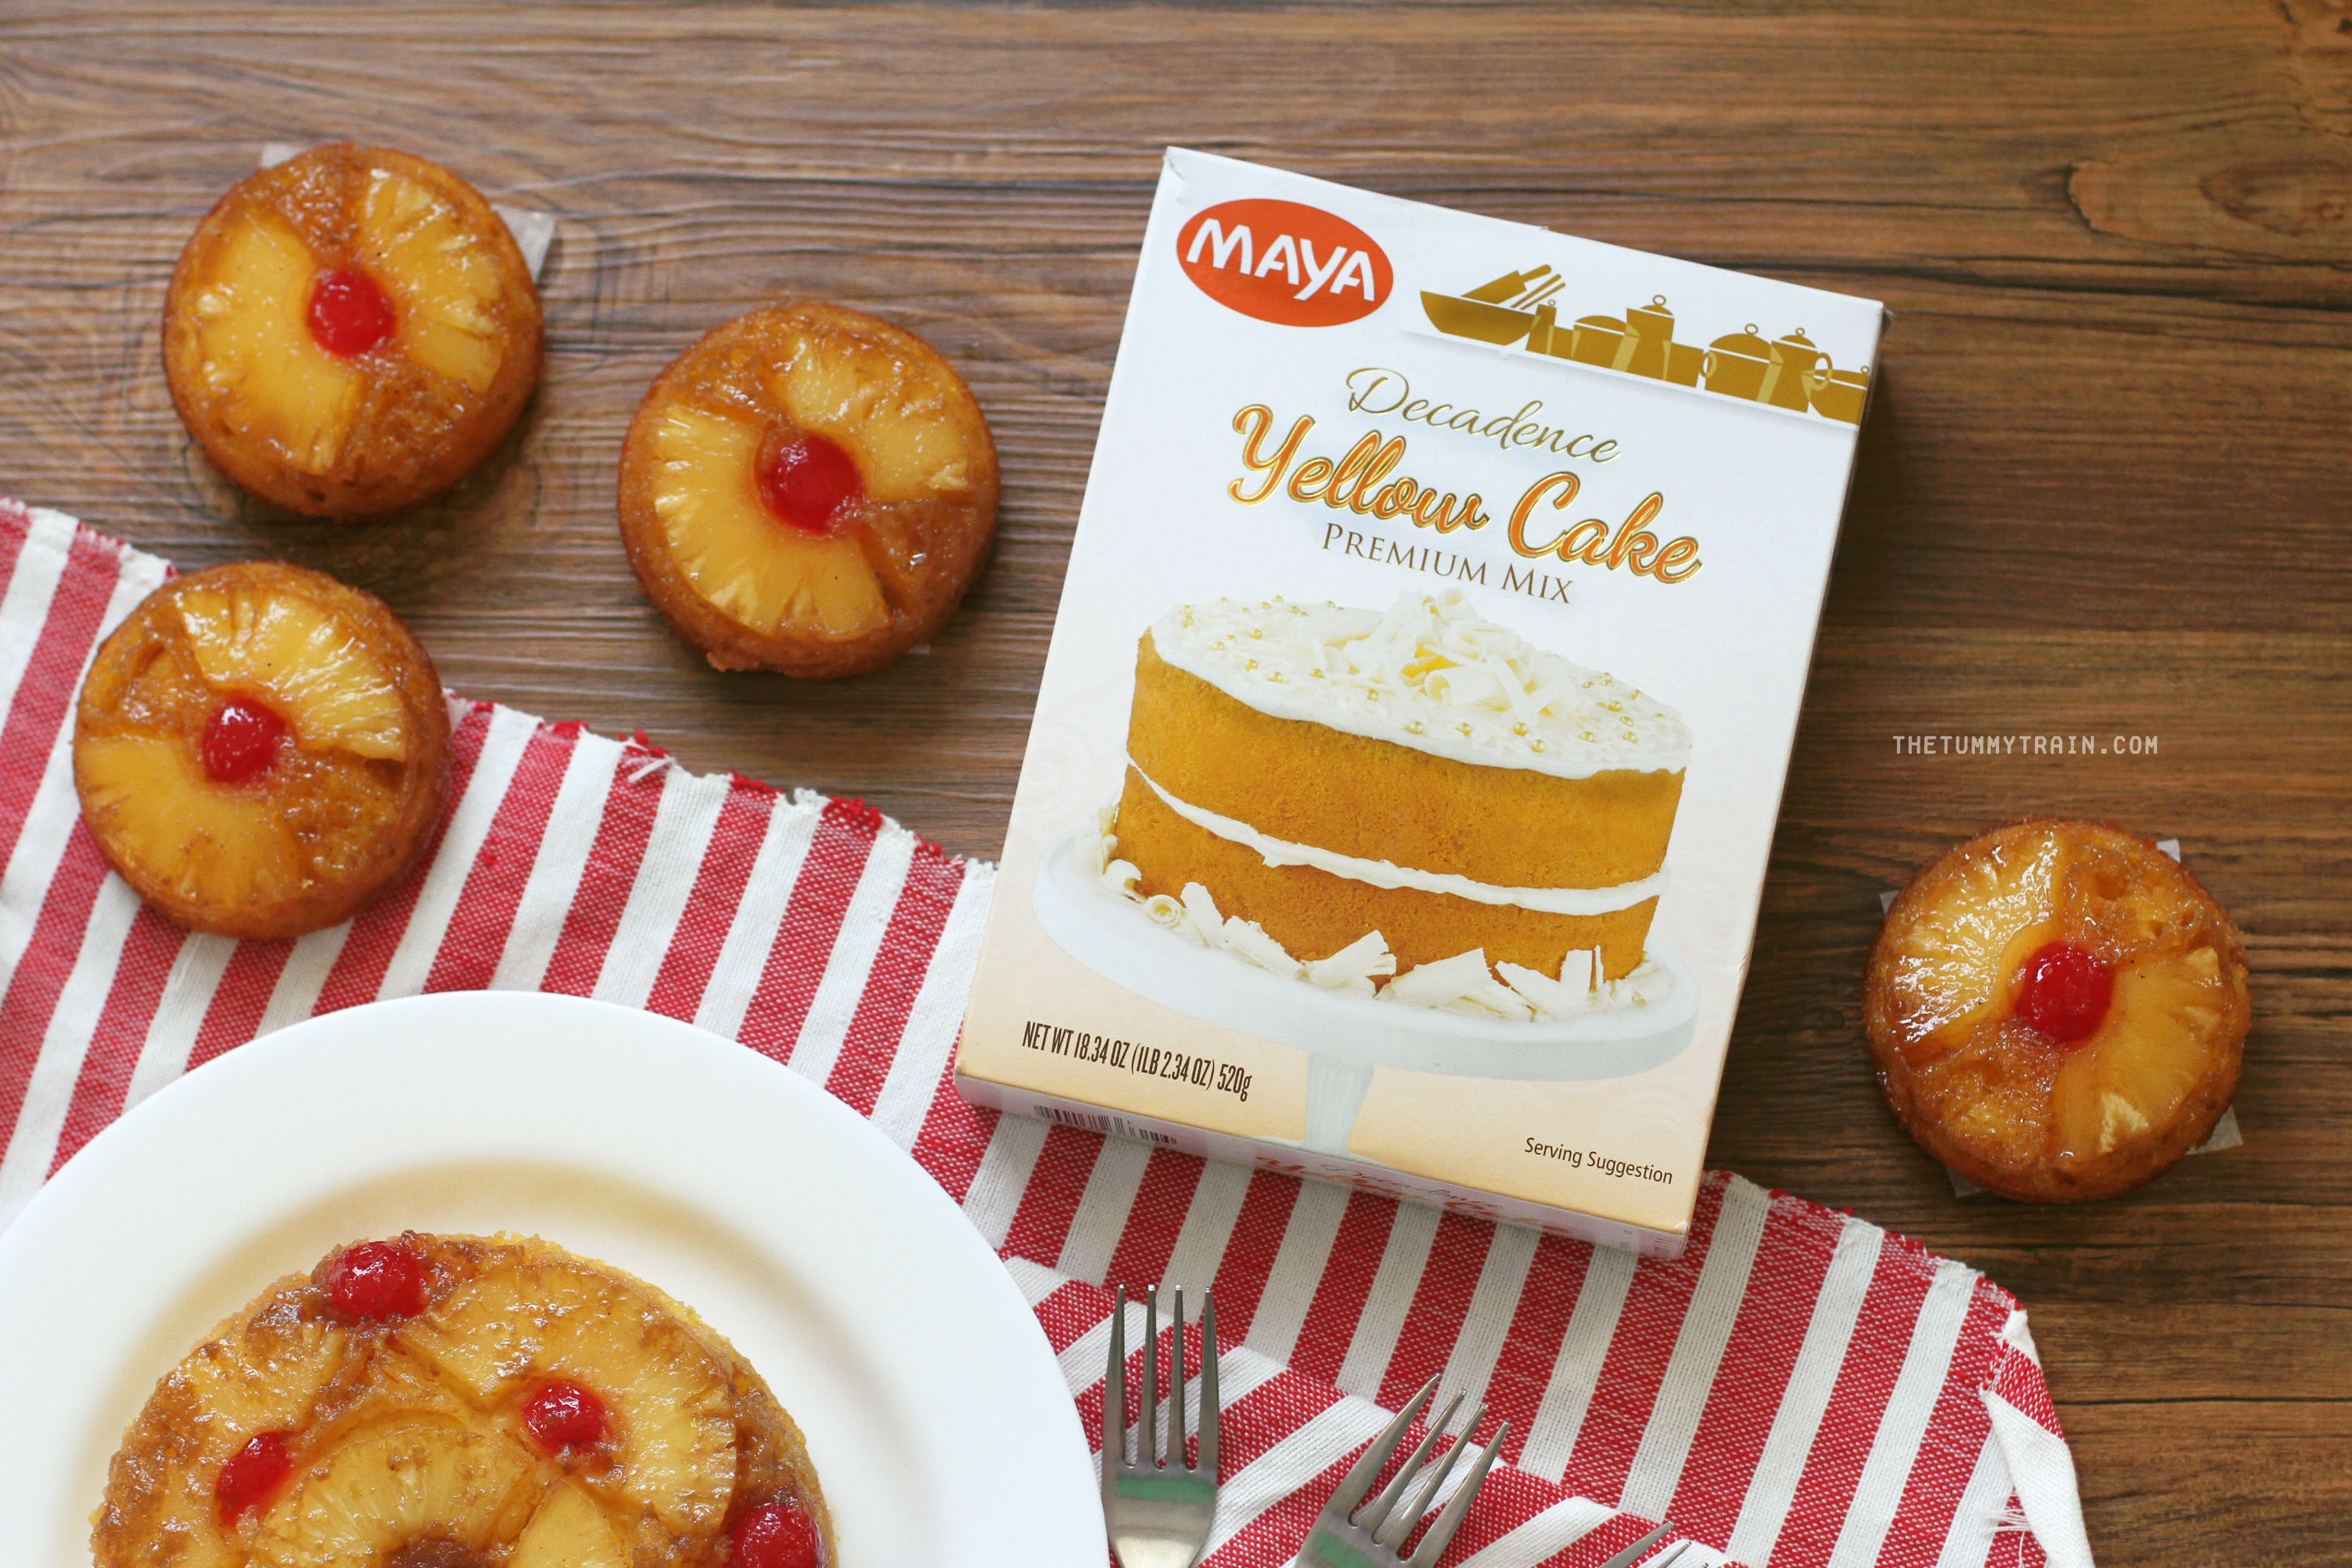 Maya Yellow Cake Mix 1 - Taste Test: Maya Yellow Cake Mix Pineapple Upside Down Cake